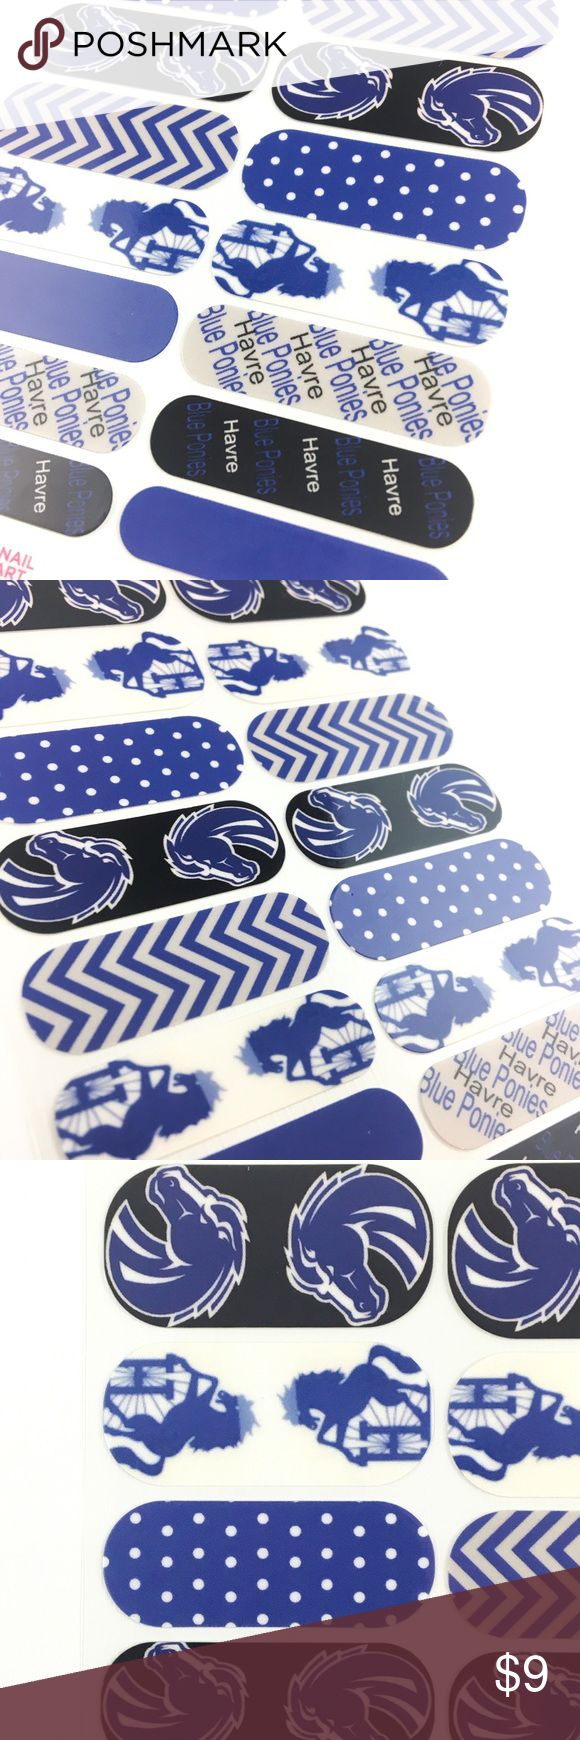 Jamberry Custom Blue & White Nail Wrap, Full Sheet Custom designed for the Havre High Blue Blue Ponies, you don't have to be a pony to love these! Five designs in blue, black, gray and white, two feature Havre Blue Ponies writing, one a dark blue with white polka dots, one a solid cobalt, and the last rearing blue horses on a white background!  This Full Sheet includes 18 Nail Wraps; each piece is designed to be used on two nails! Wear them all or make as accents! Can be used on natural or…